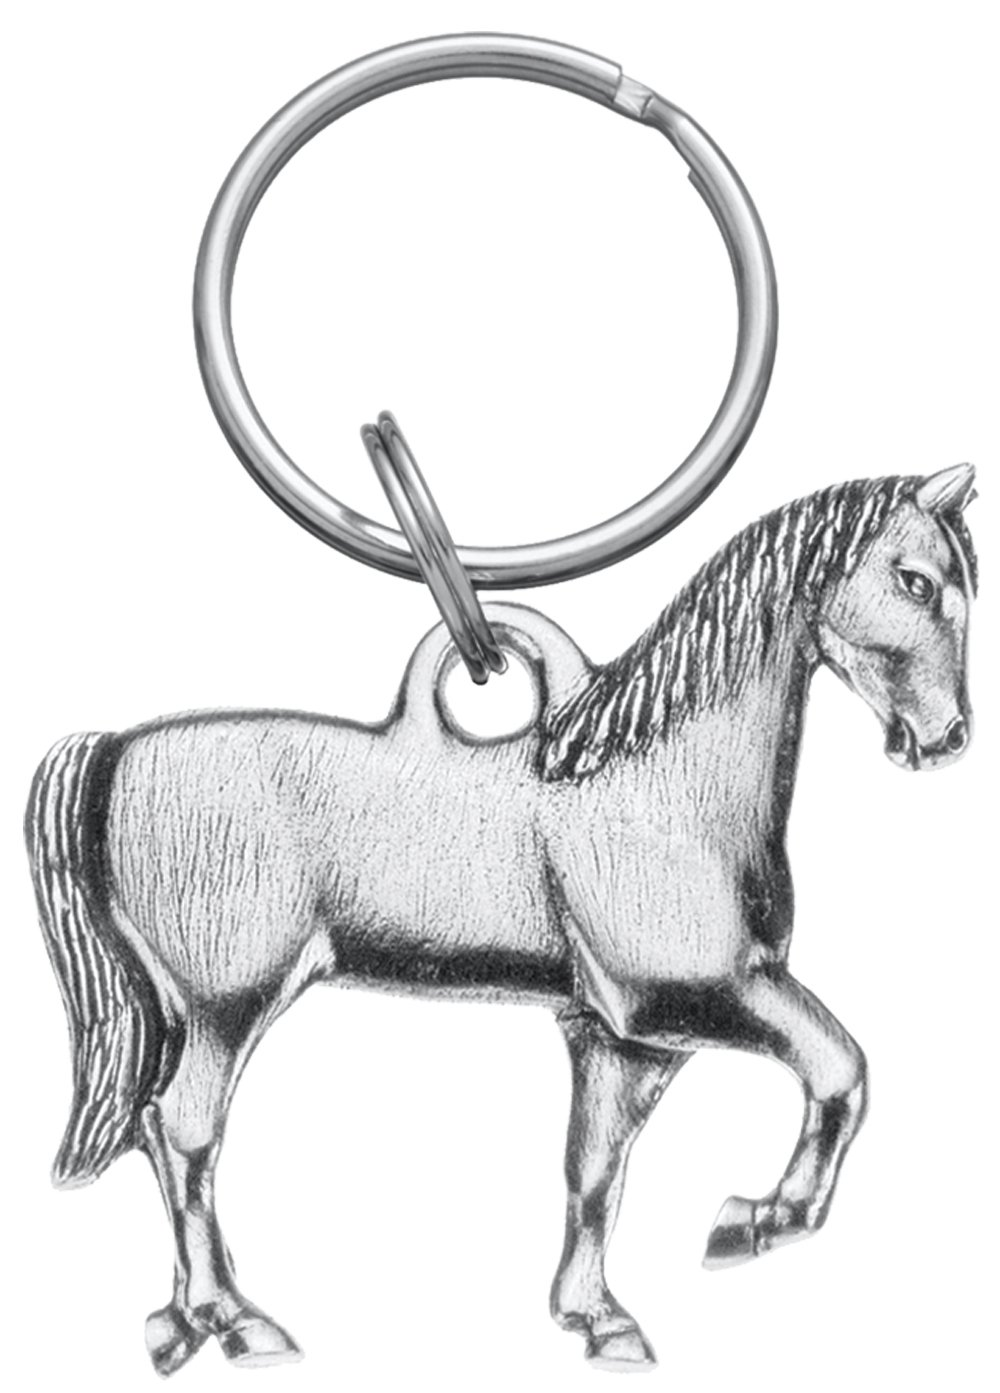 Amazon.com: Danforth – Caballo Pewter Llavero: Office Products